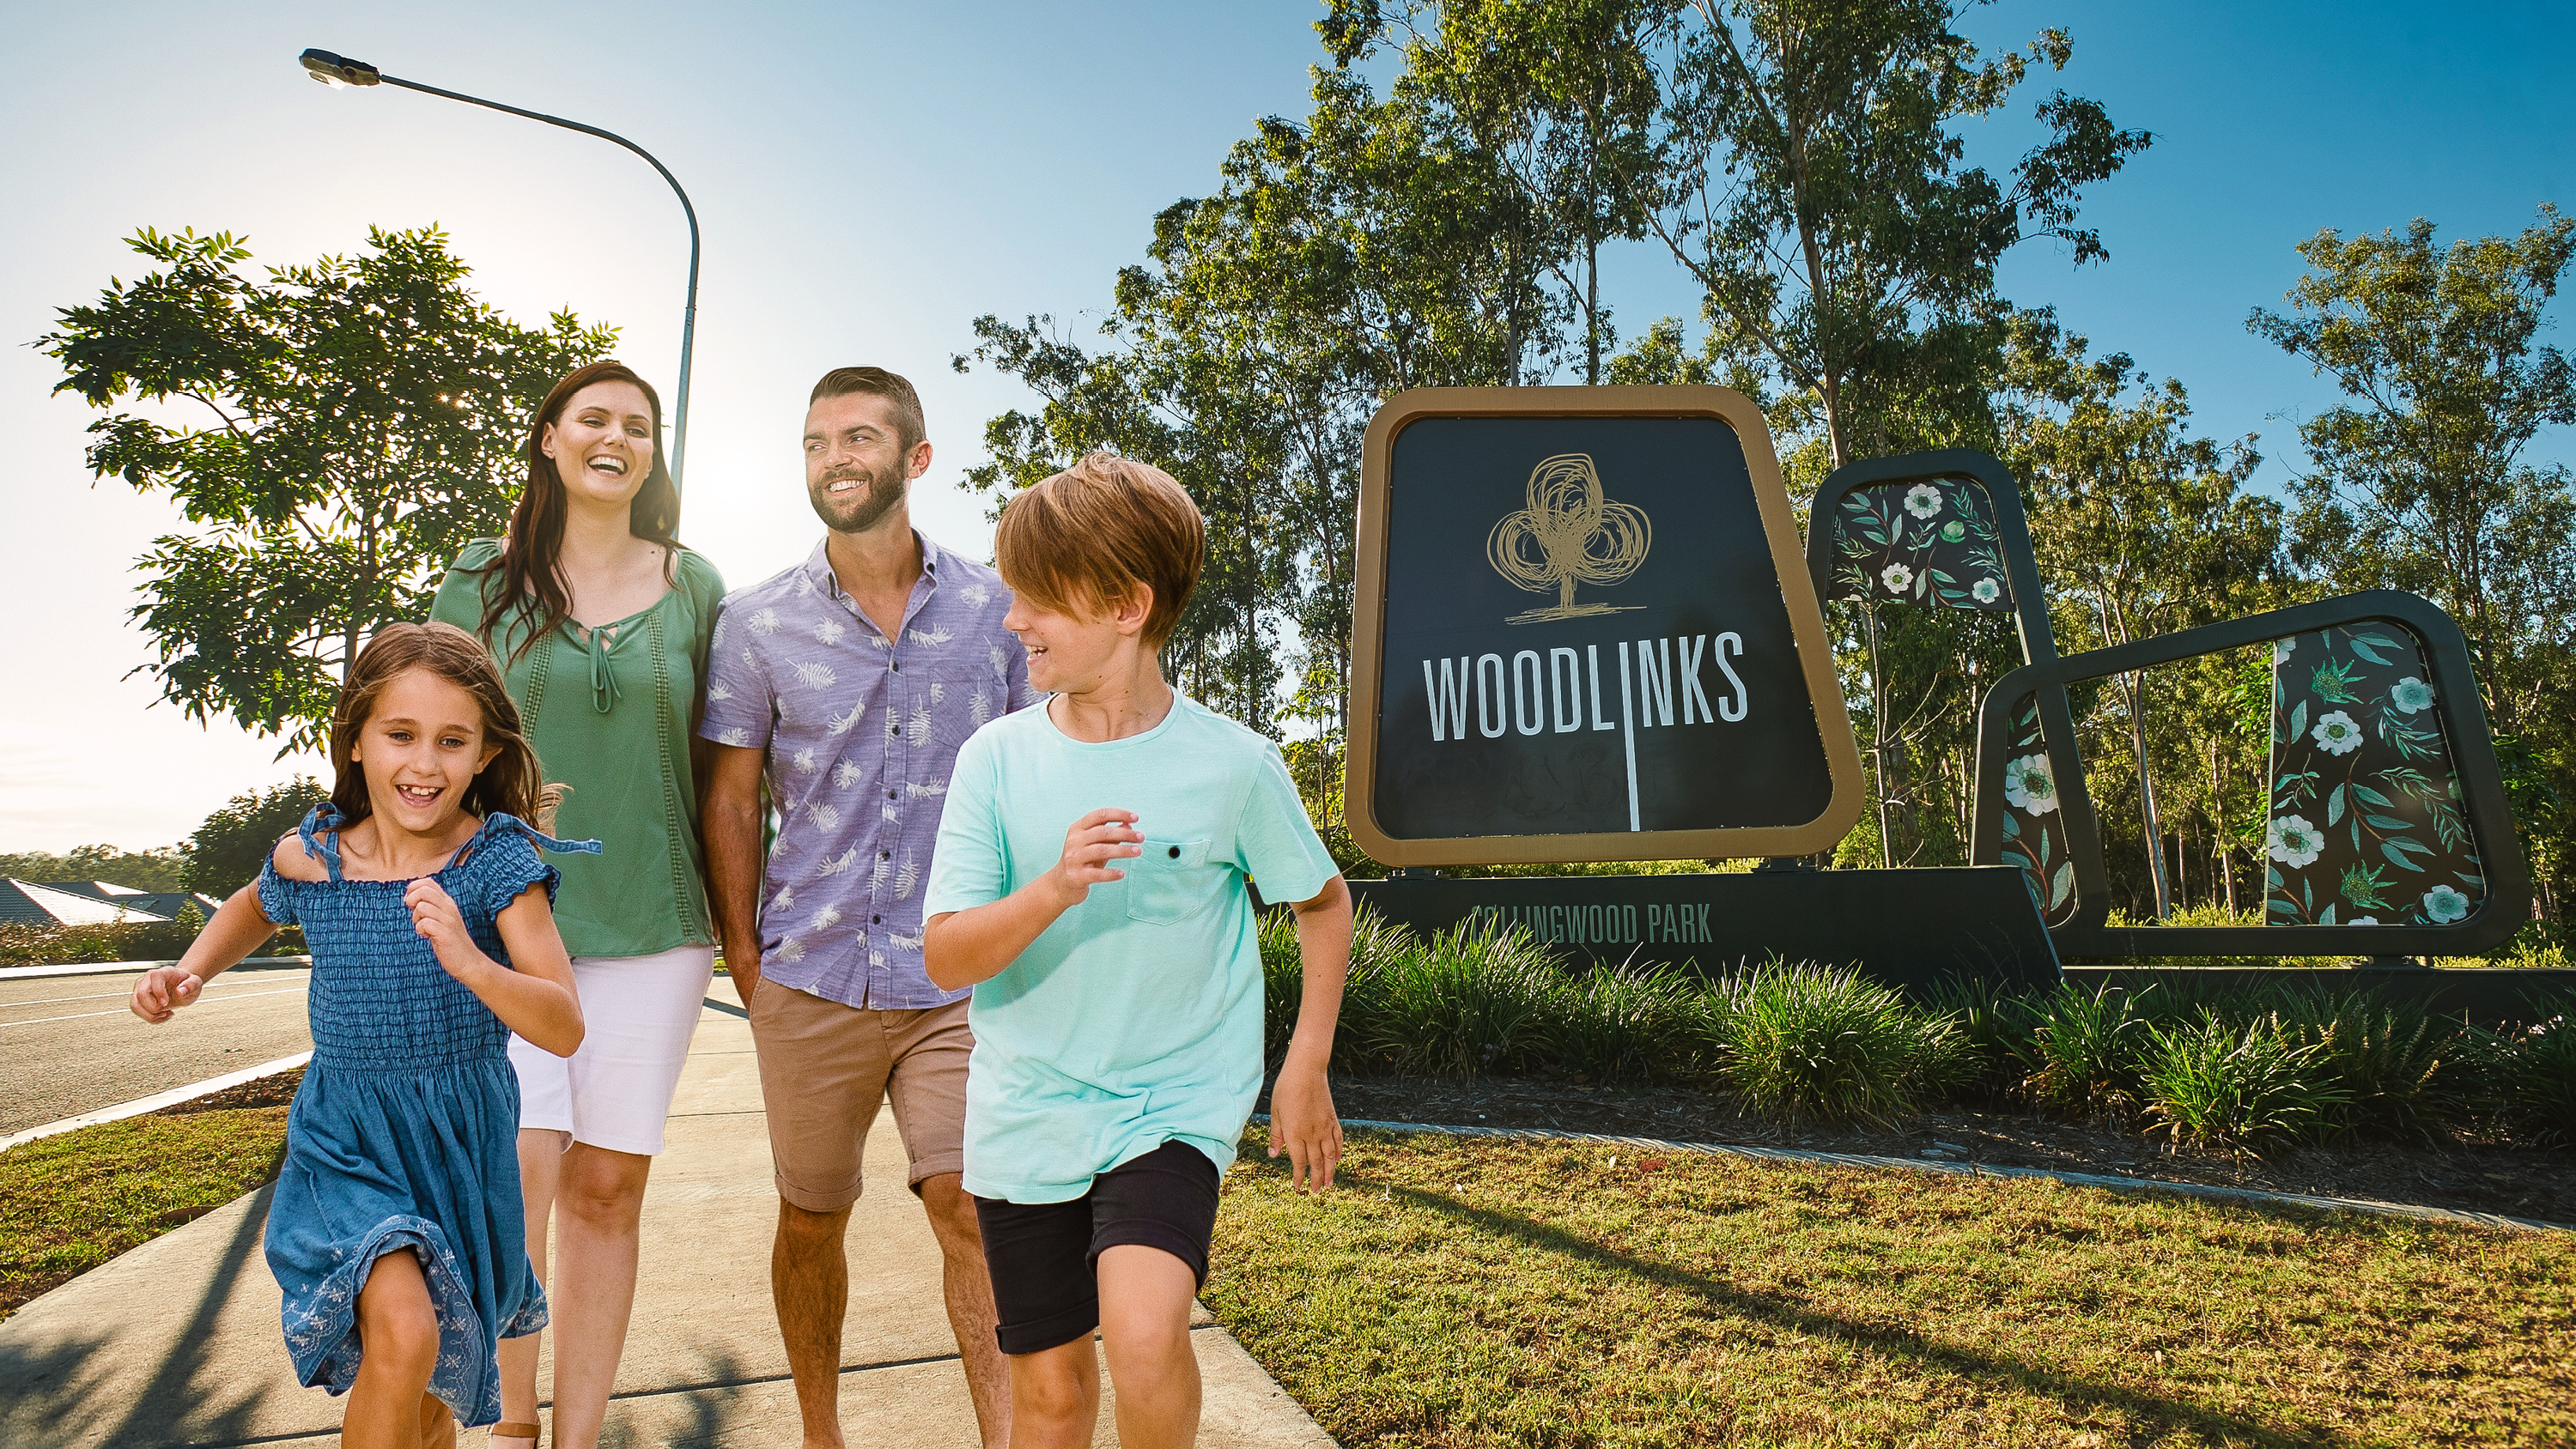 Woodlinks